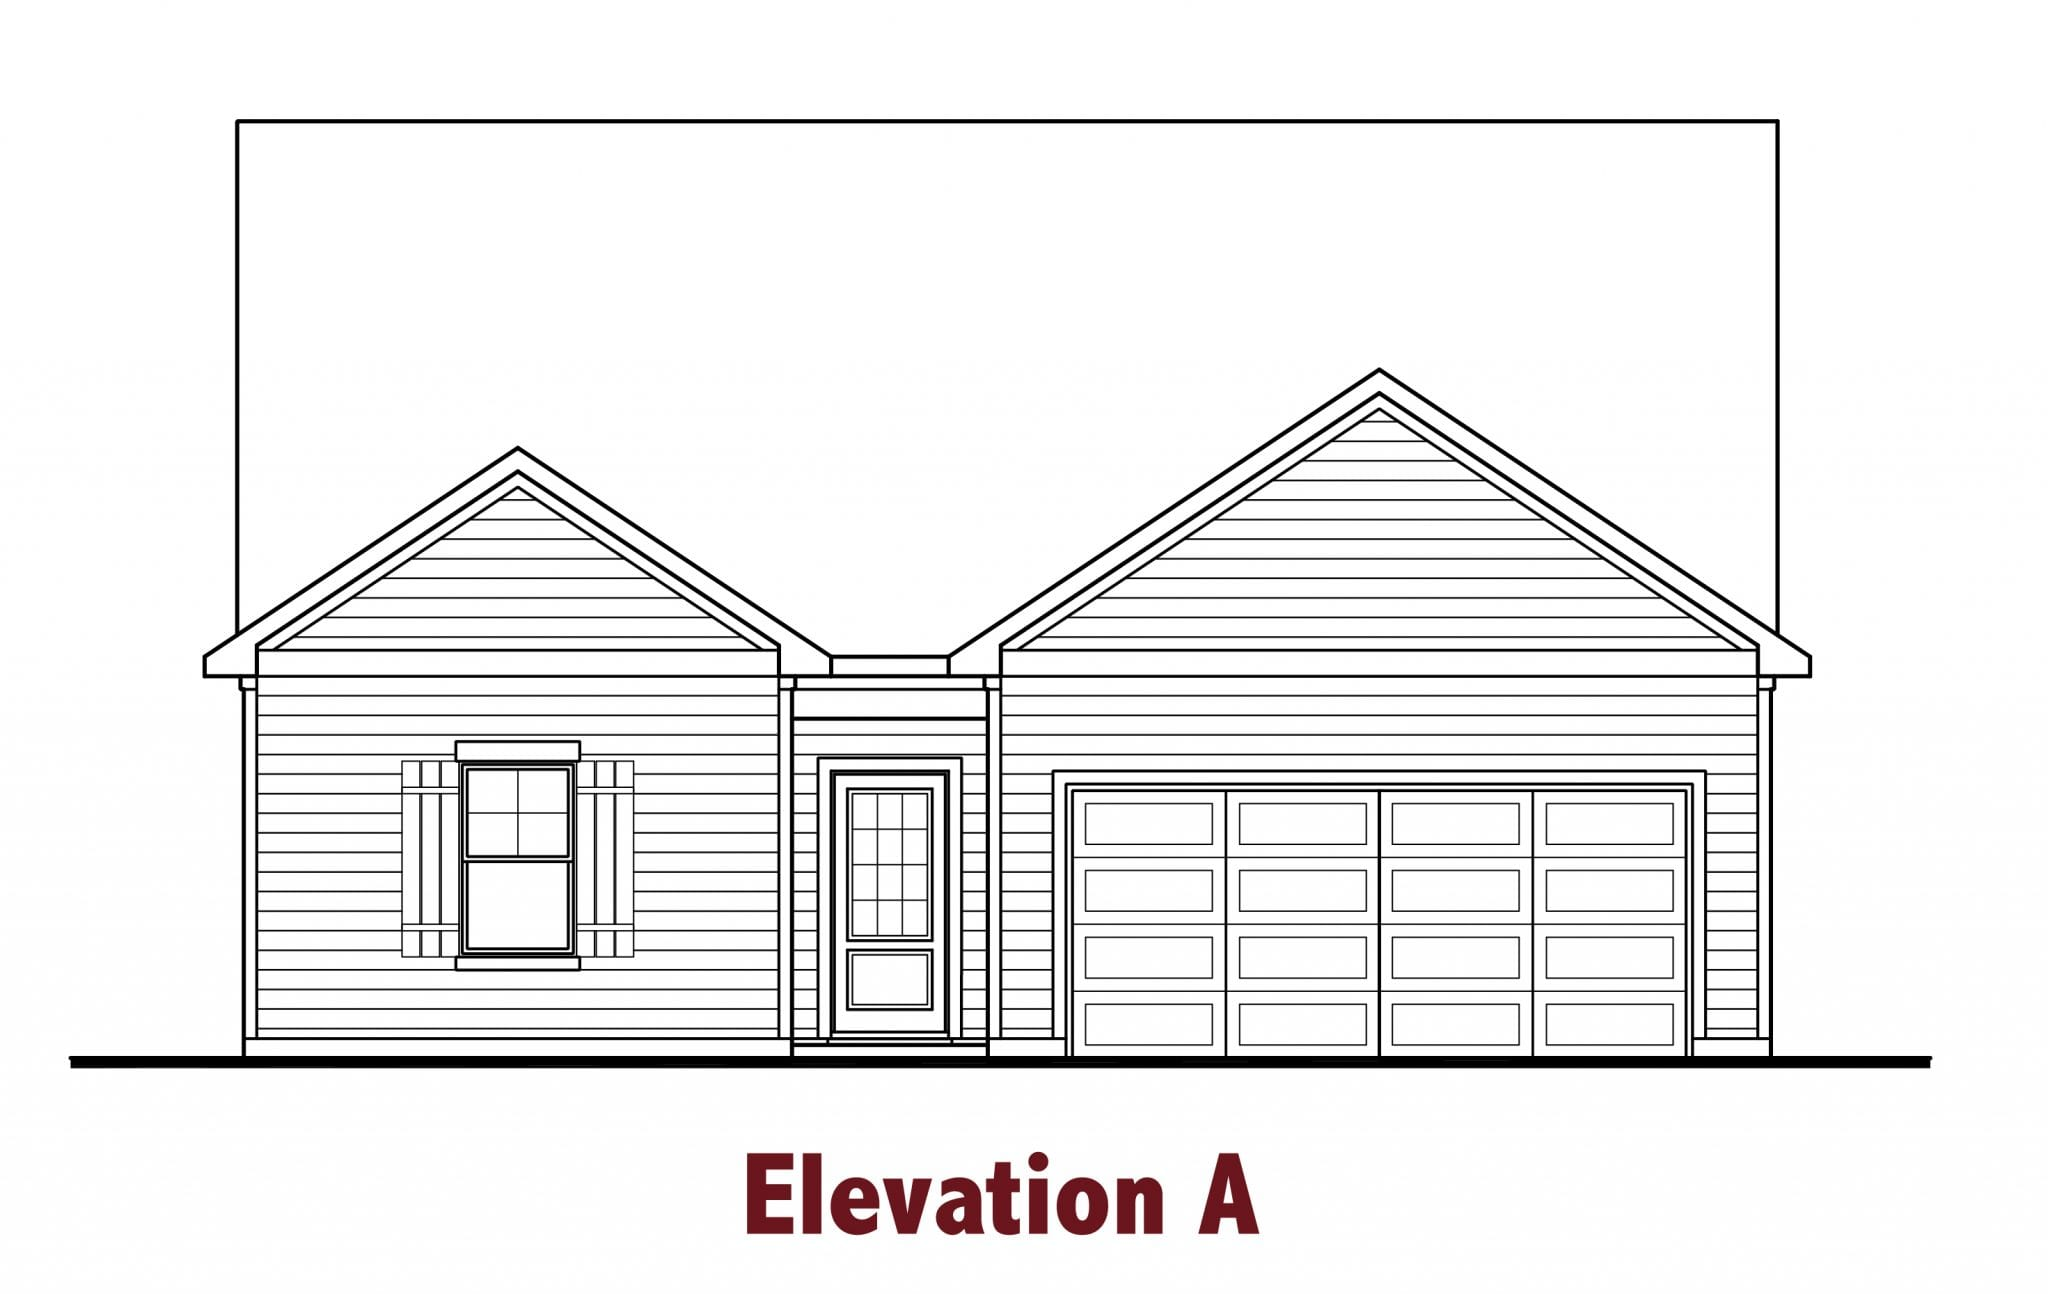 Edmond elevations Image